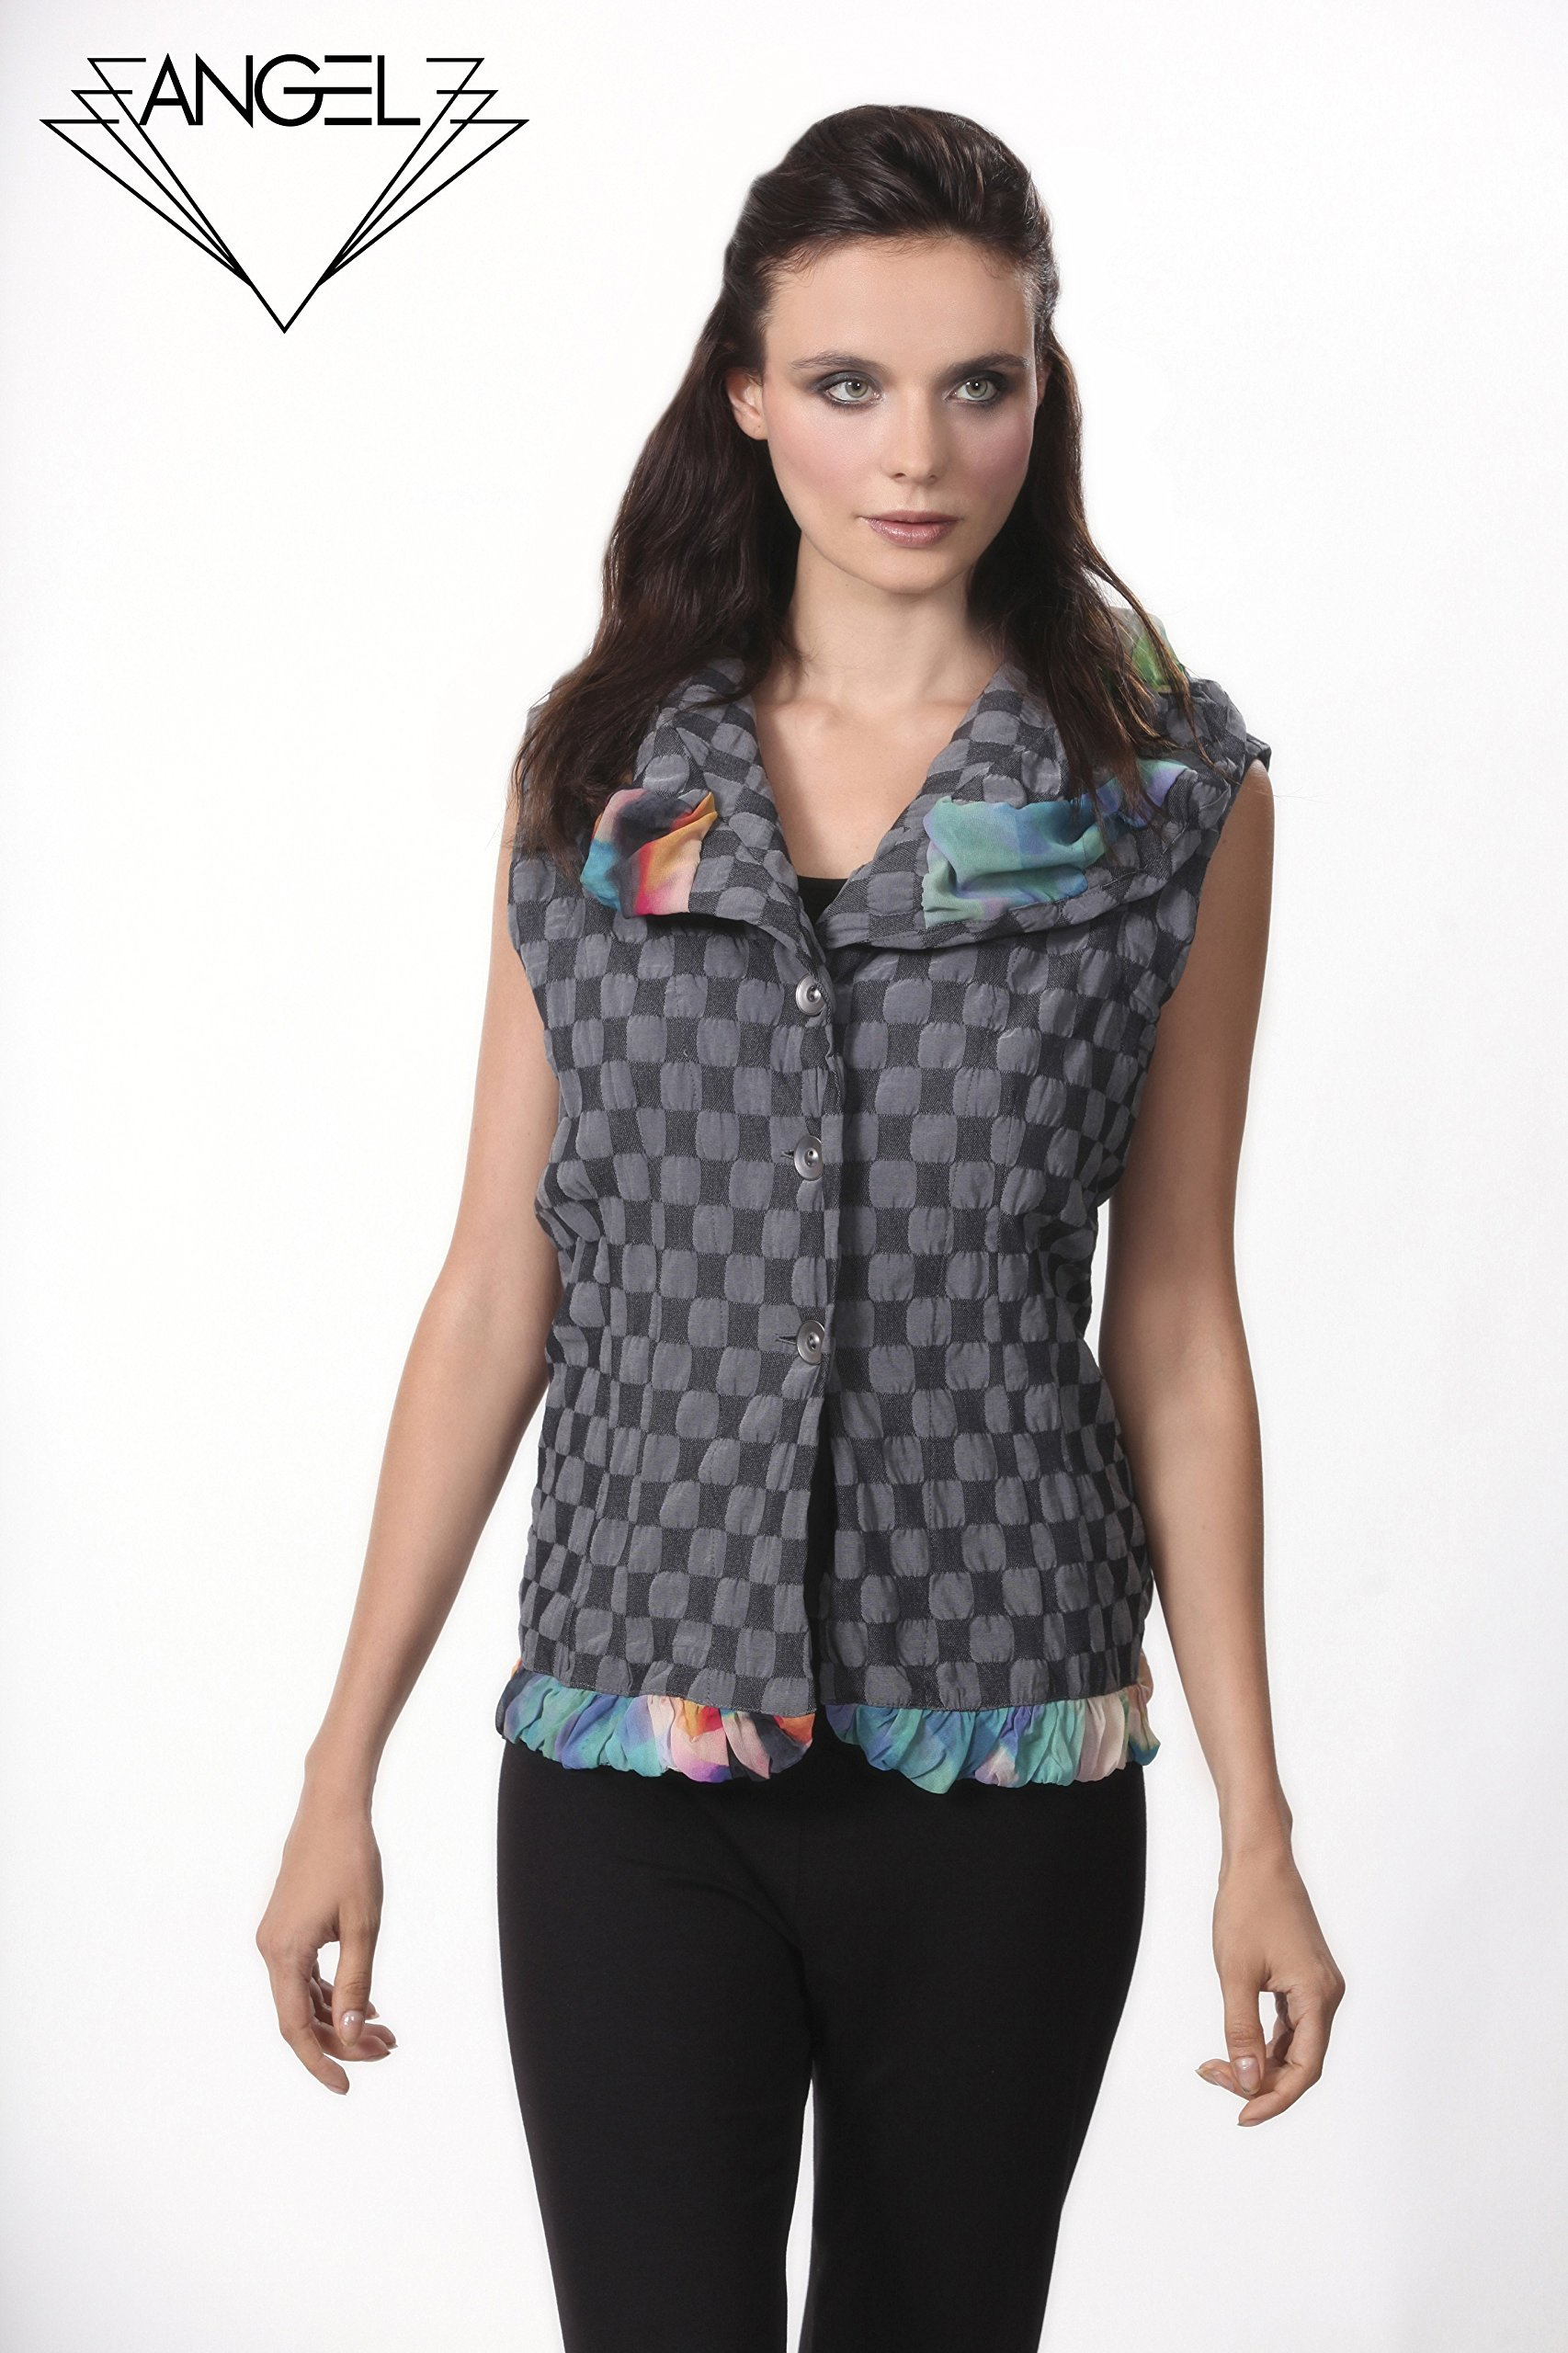 Angel Apparel Checkerboard Ruffled Vest